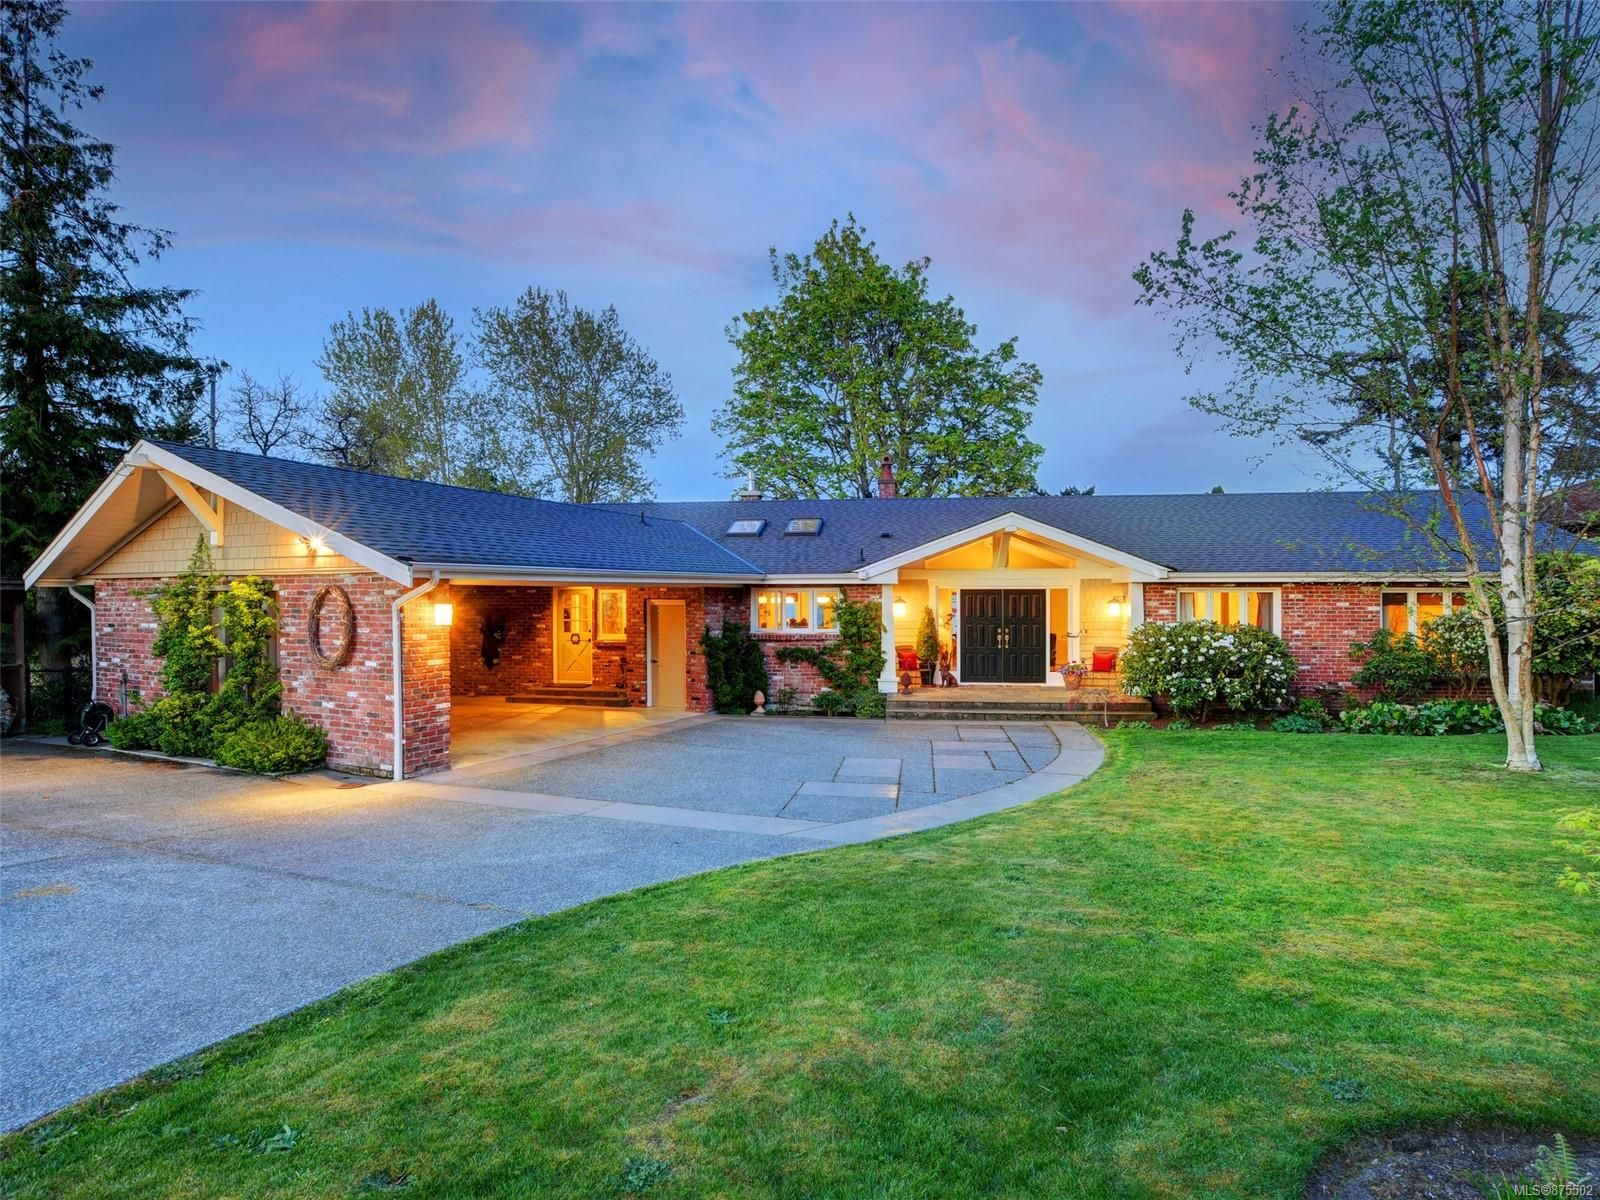 Main Photo: 6749 Welch Rd in : CS Martindale House for sale (Central Saanich)  : MLS®# 875502